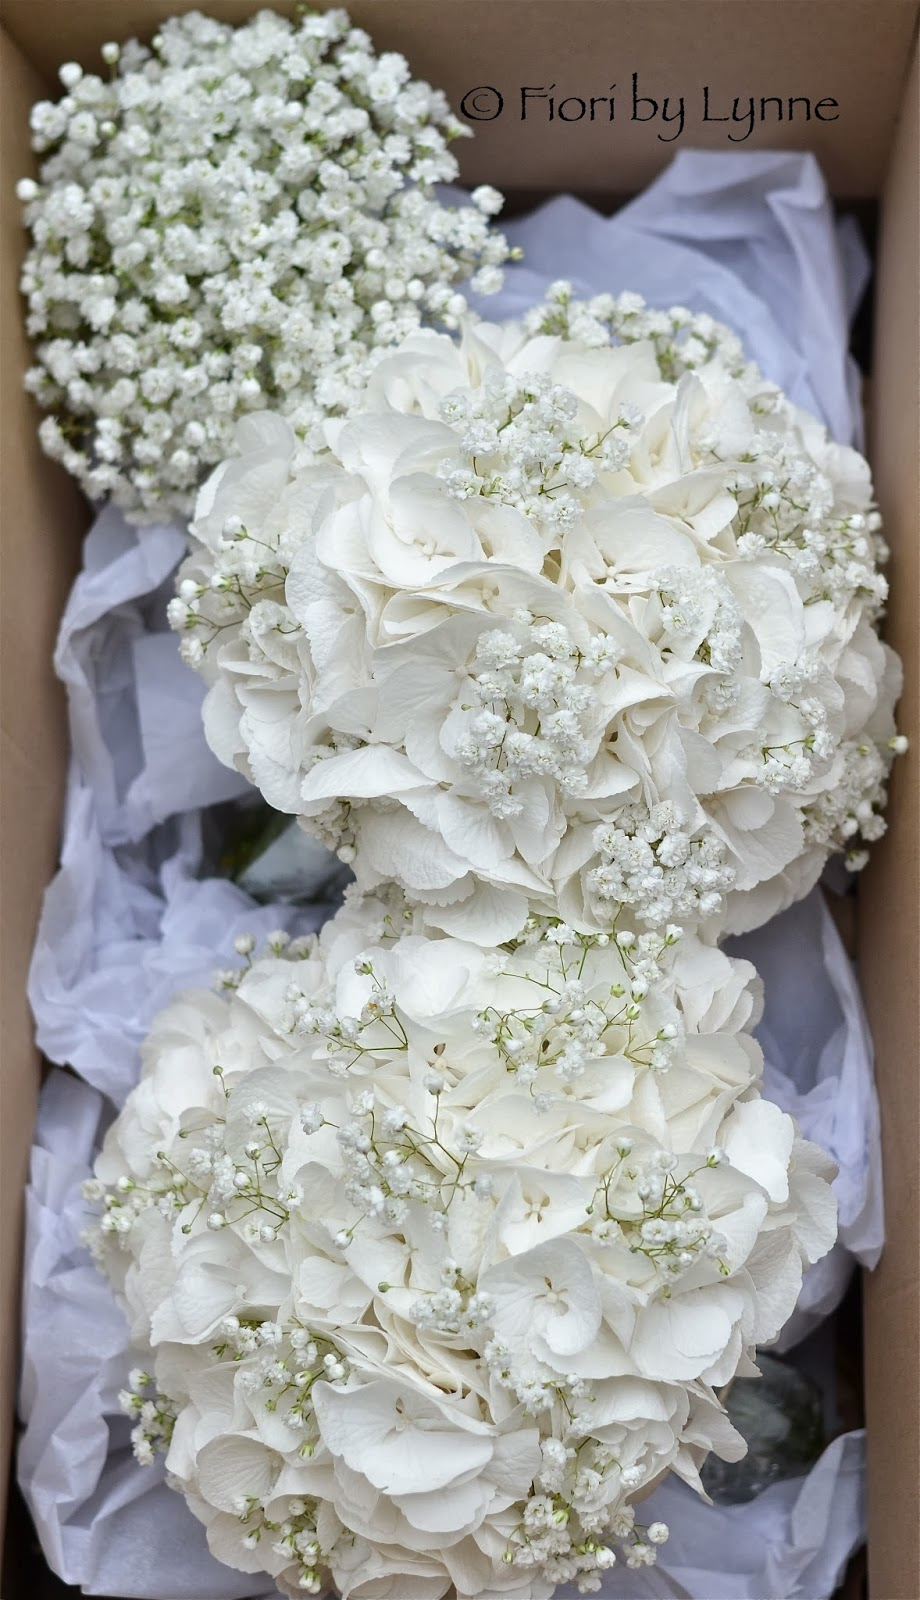 white hydrangea wedding bouquet wedding flowers december 2013 1342